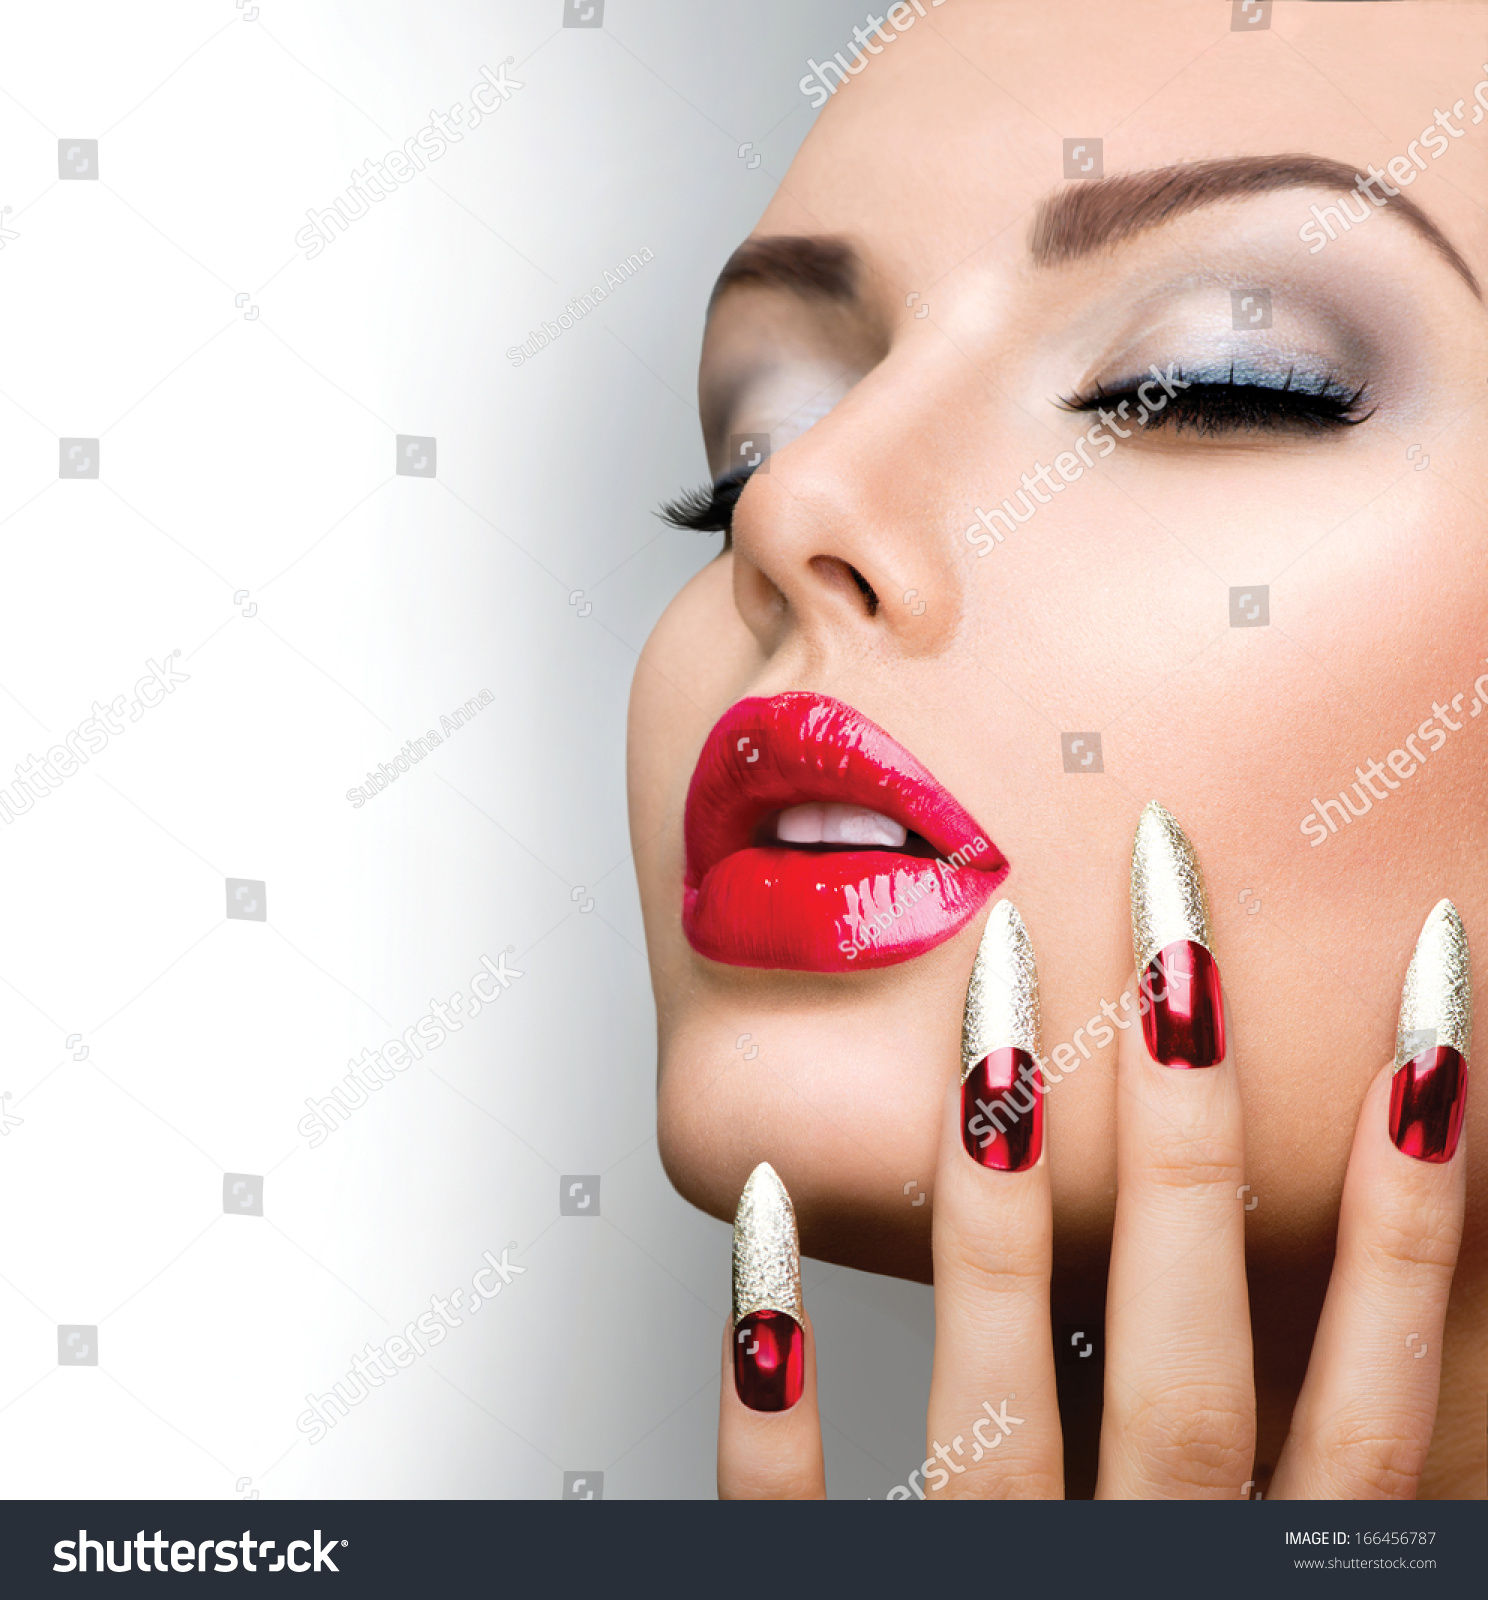 Free Manicure Beauty Hands Makeover: Fashion Beauty Model Girl. Manicure And Make-Up. Nail Art